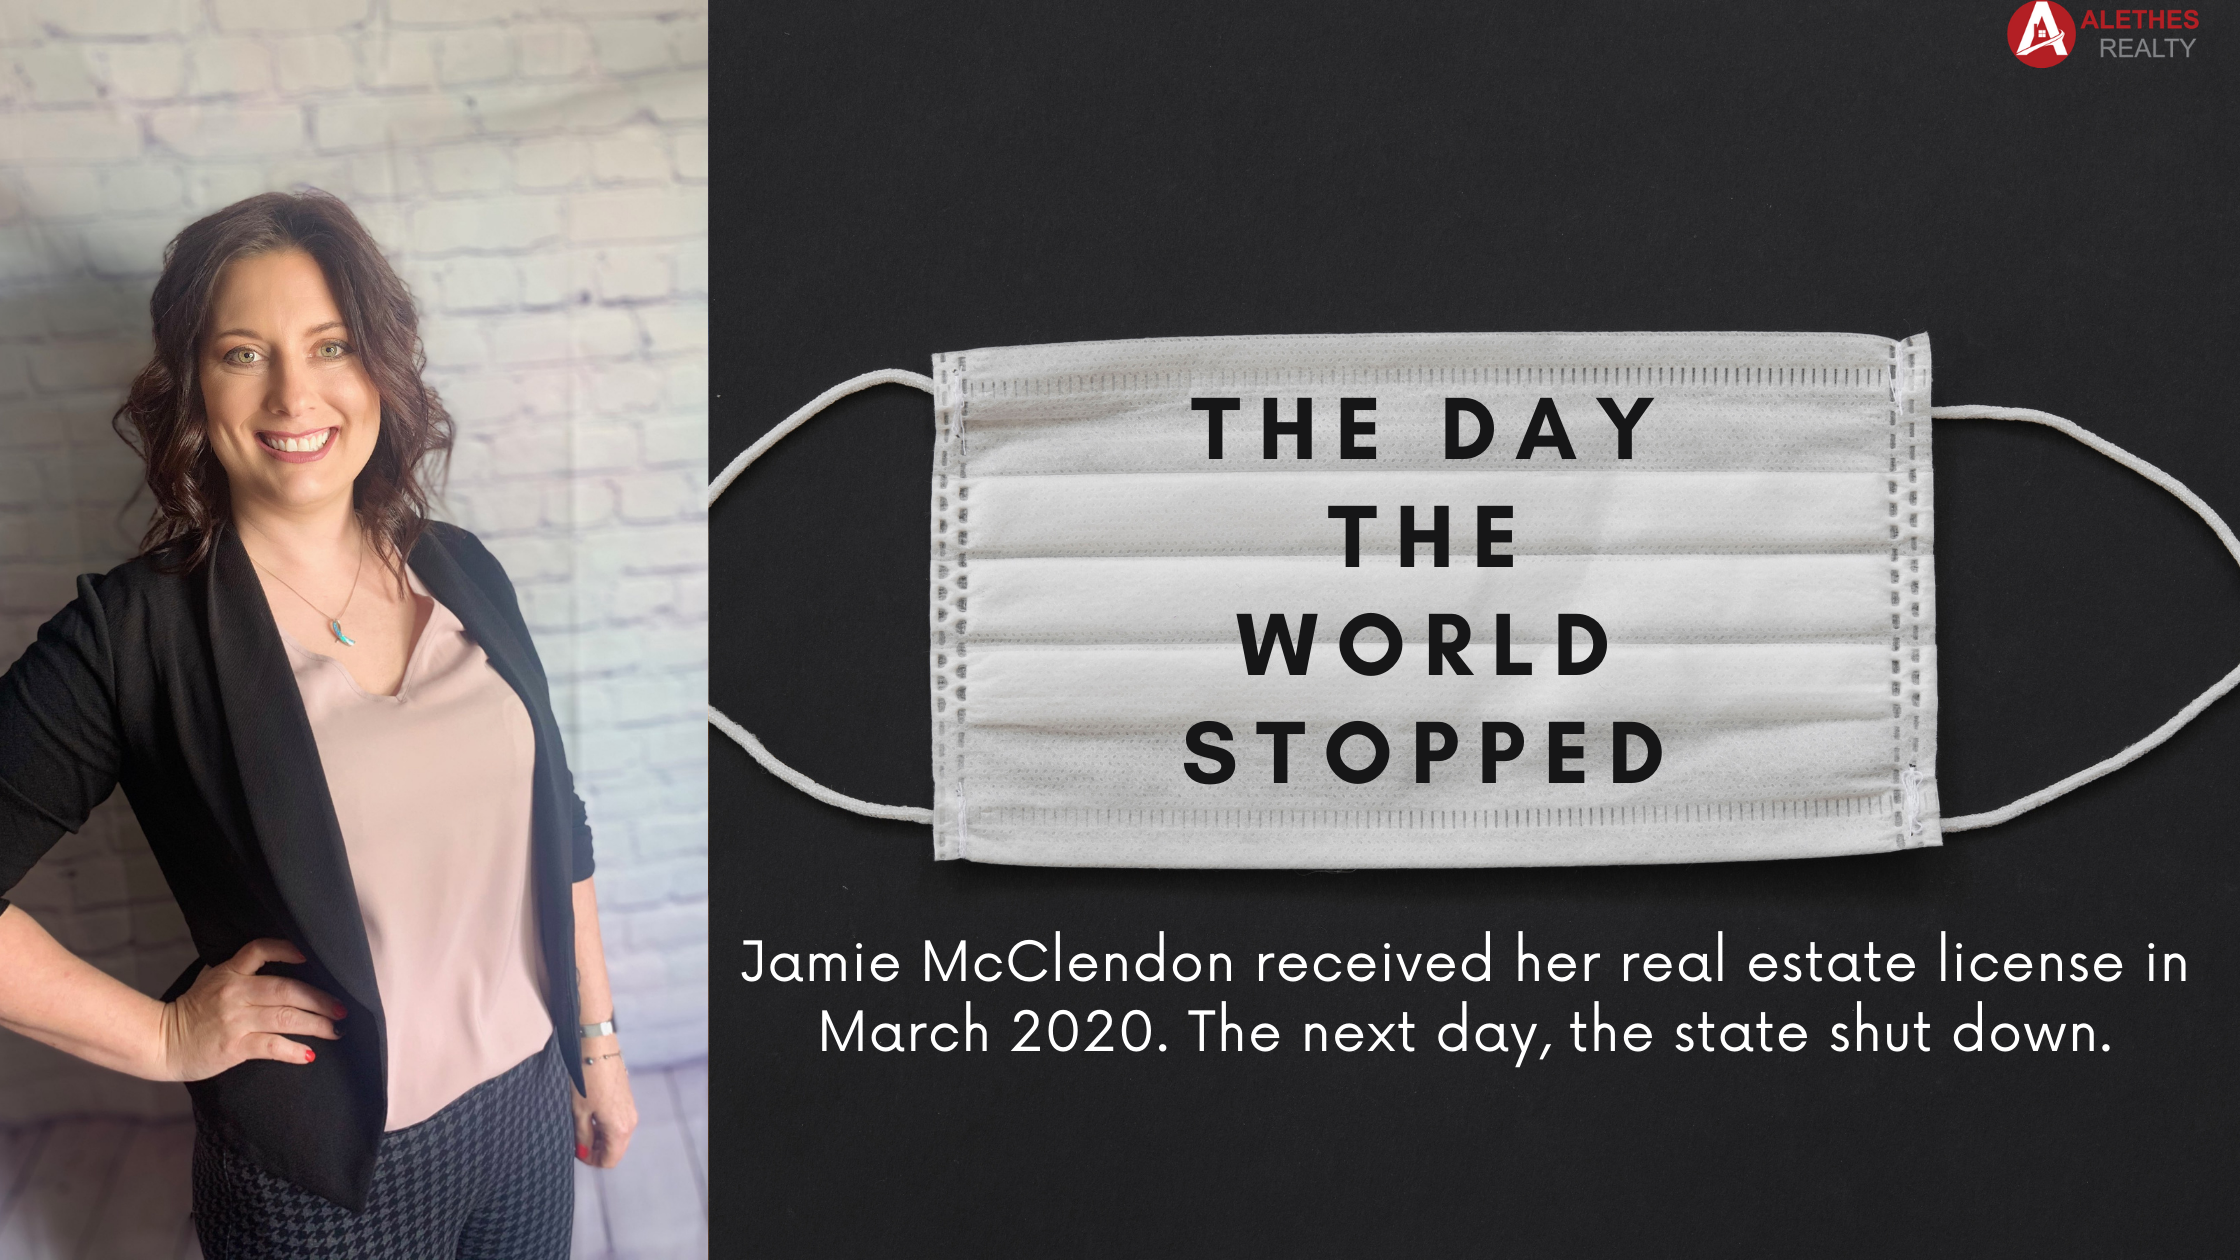 Jamie McClendon's real estate journey began the same day Arkansas began shutting down schools and businesses due to the COVID-19 pandemic.